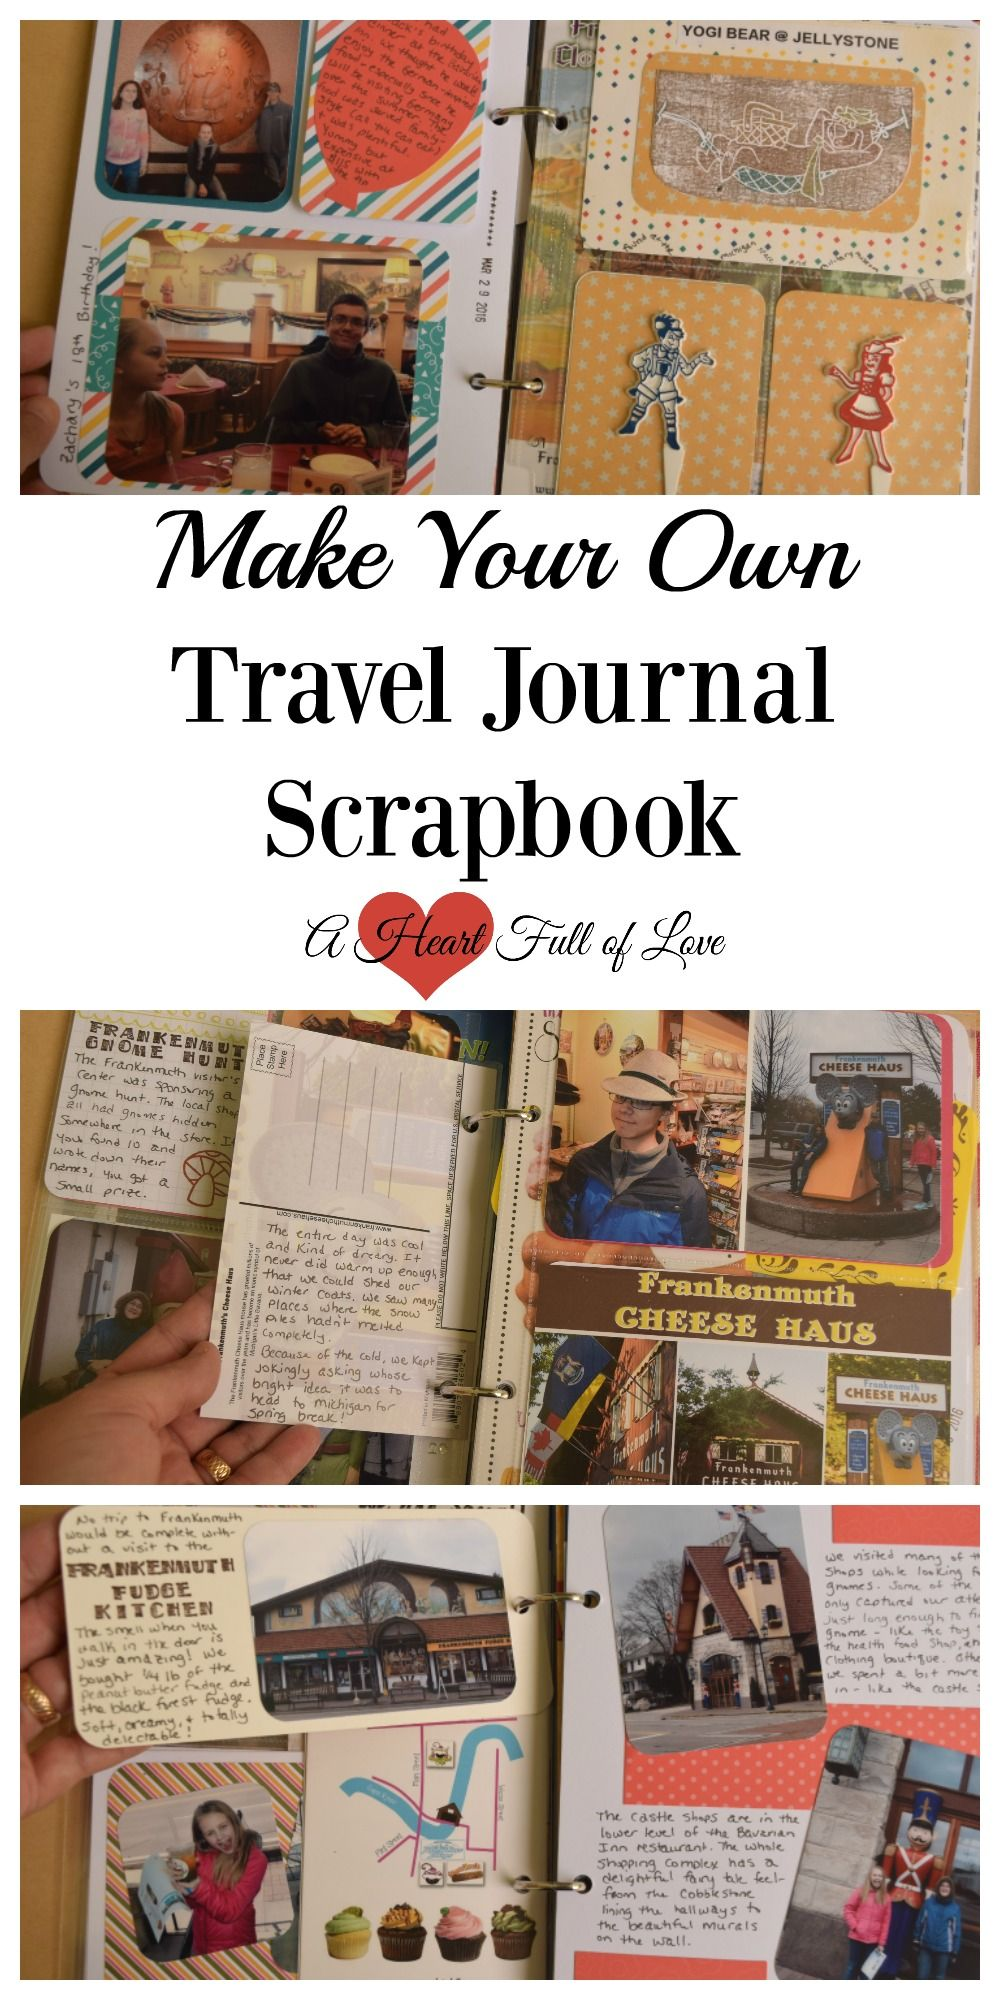 How to scrapbook travel - Learn How To Make Your Own Travel Journal Scrapbook To